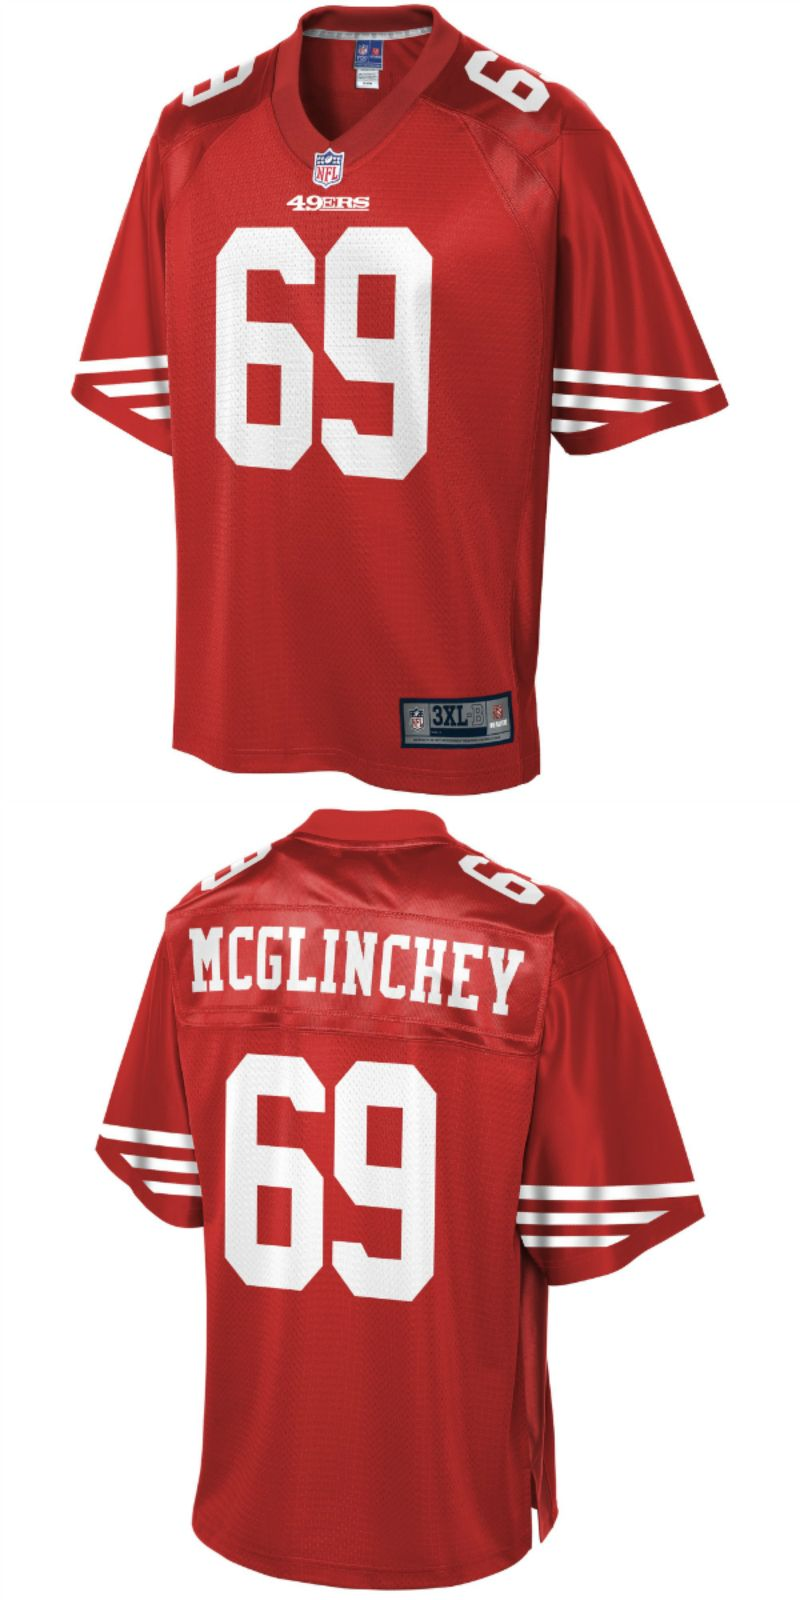 best loved a2425 788ae UP TO 70% OFF. Mike McGlinchey San Francisco 49ers NFL Pro ...